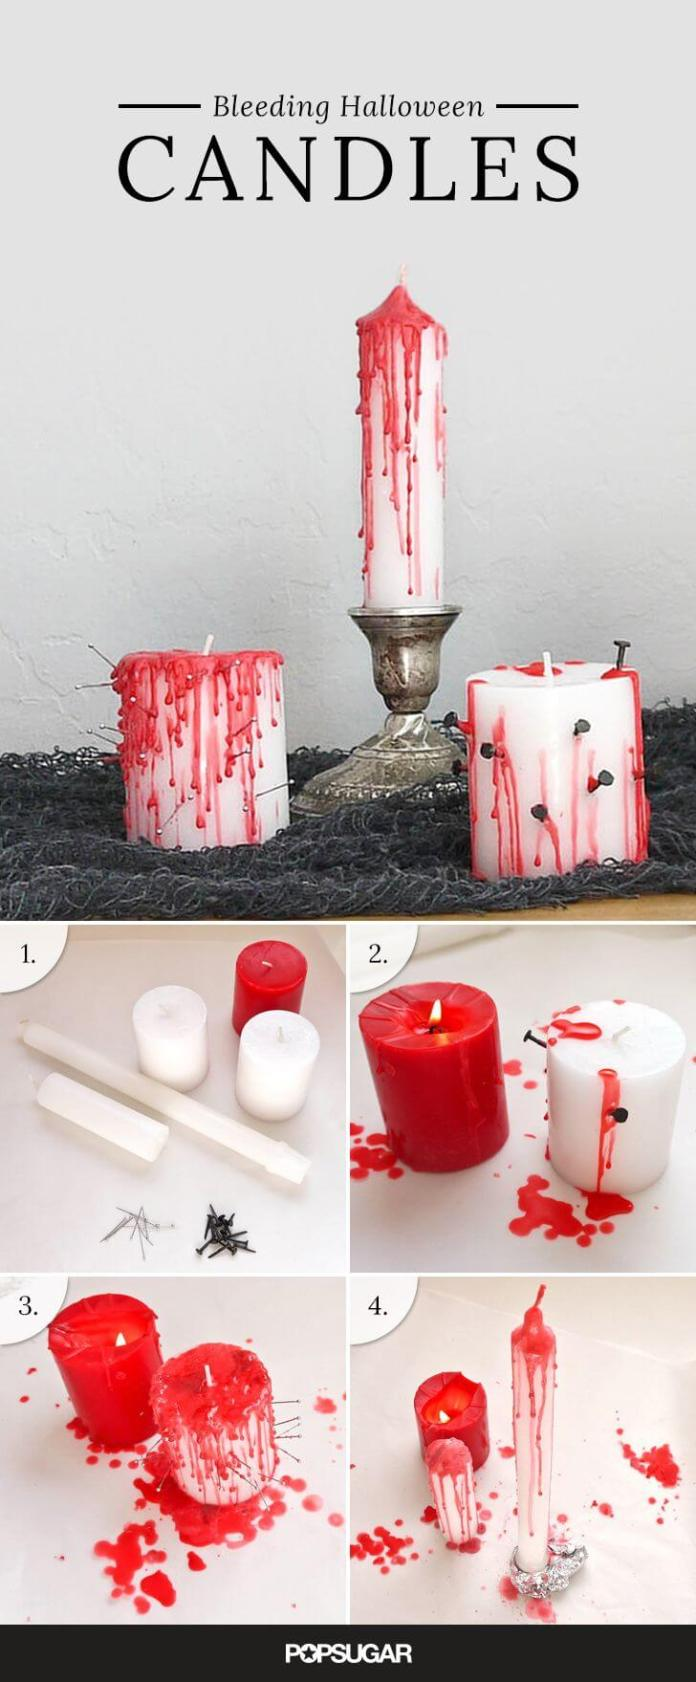 Bloody Candles without the Gore | DIY Indoor Halloween Decorating Ideas